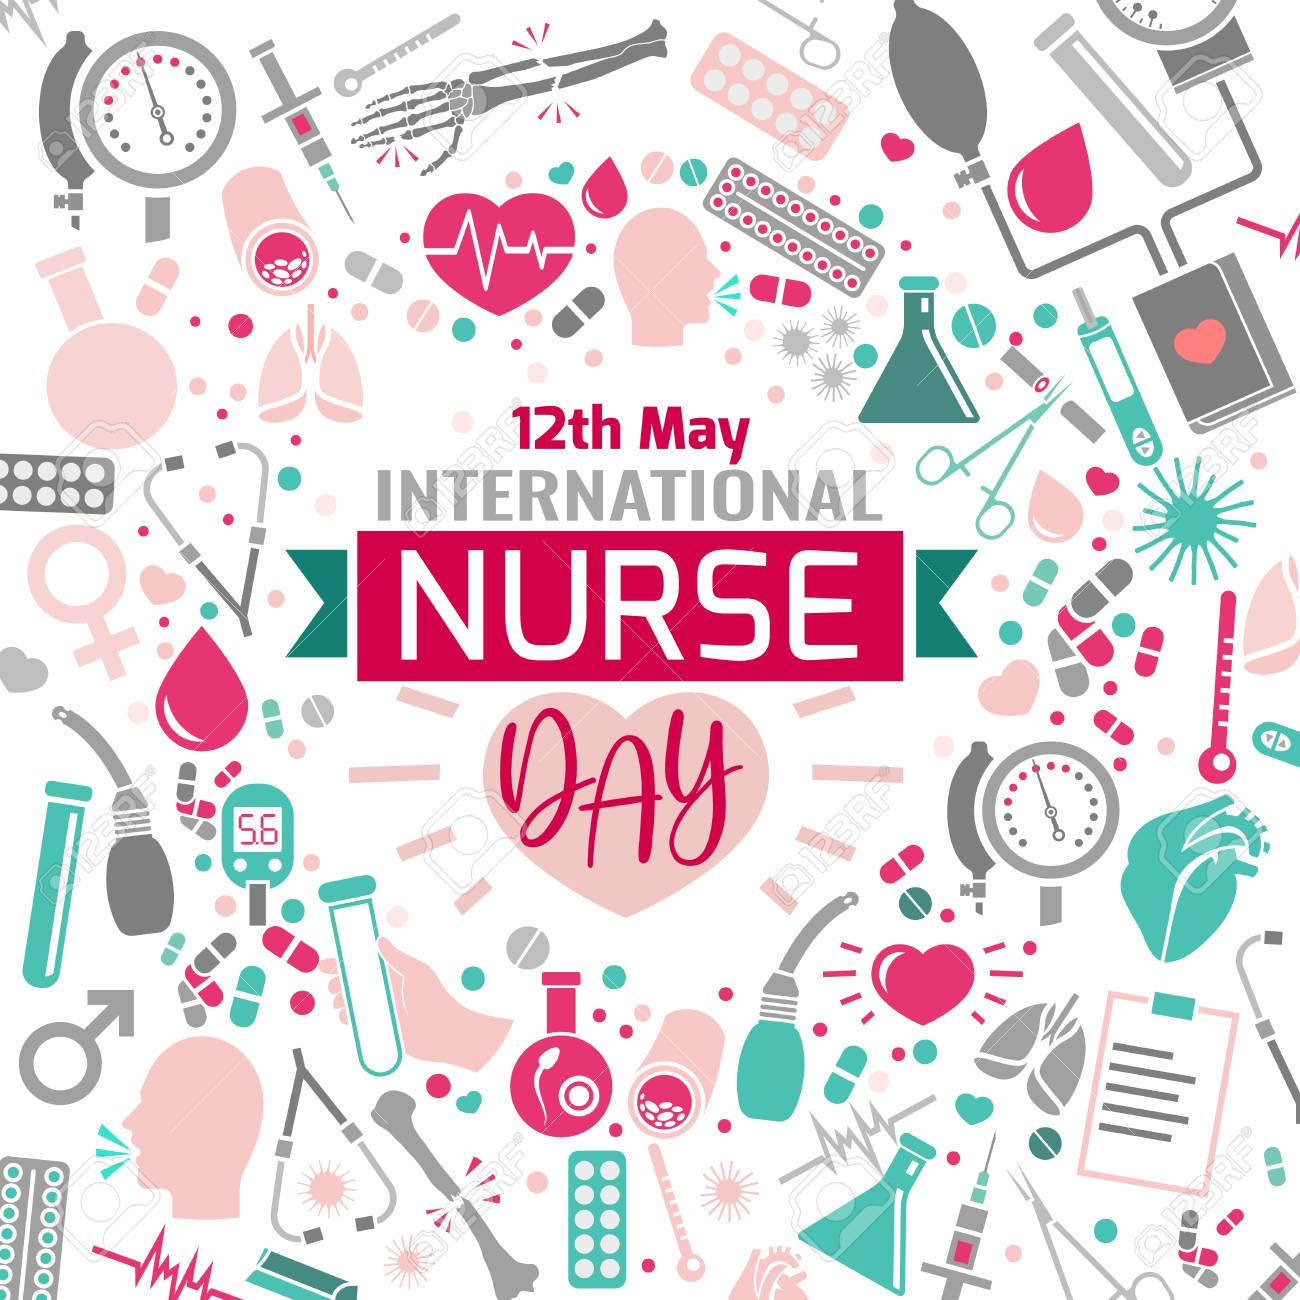 International nurse day image. Vector illustration in pink, green and grey colors isolated on a white background. Medical and healthcare concept. - 103528984